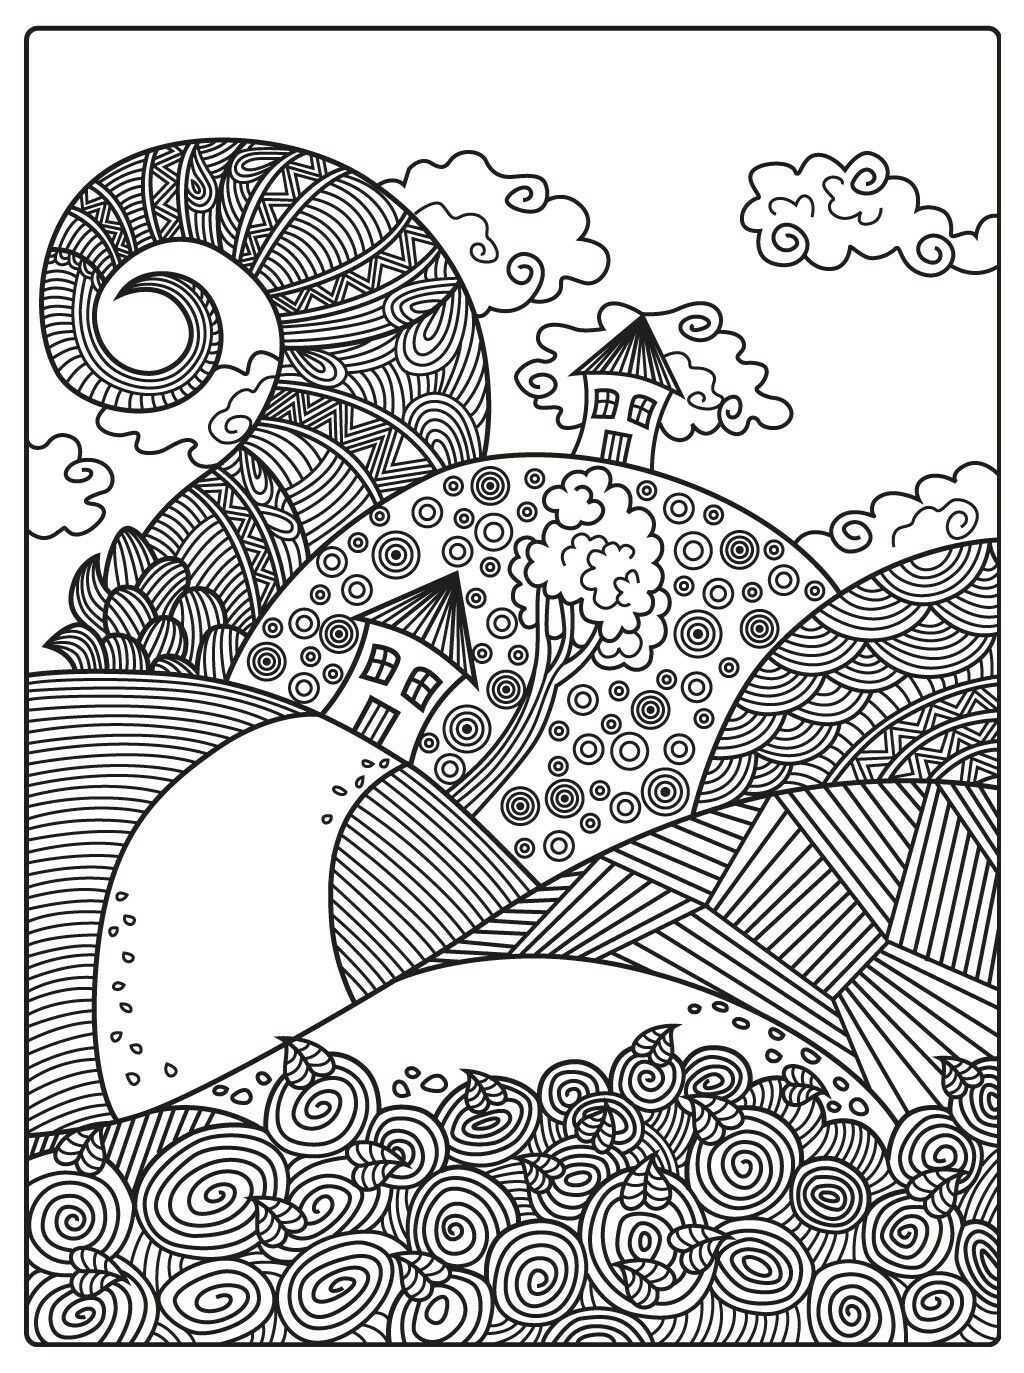 Pin By Ella On Antystresowe Kolorowanki Domki Whimsical Art Colouring Pages Coloring Pages